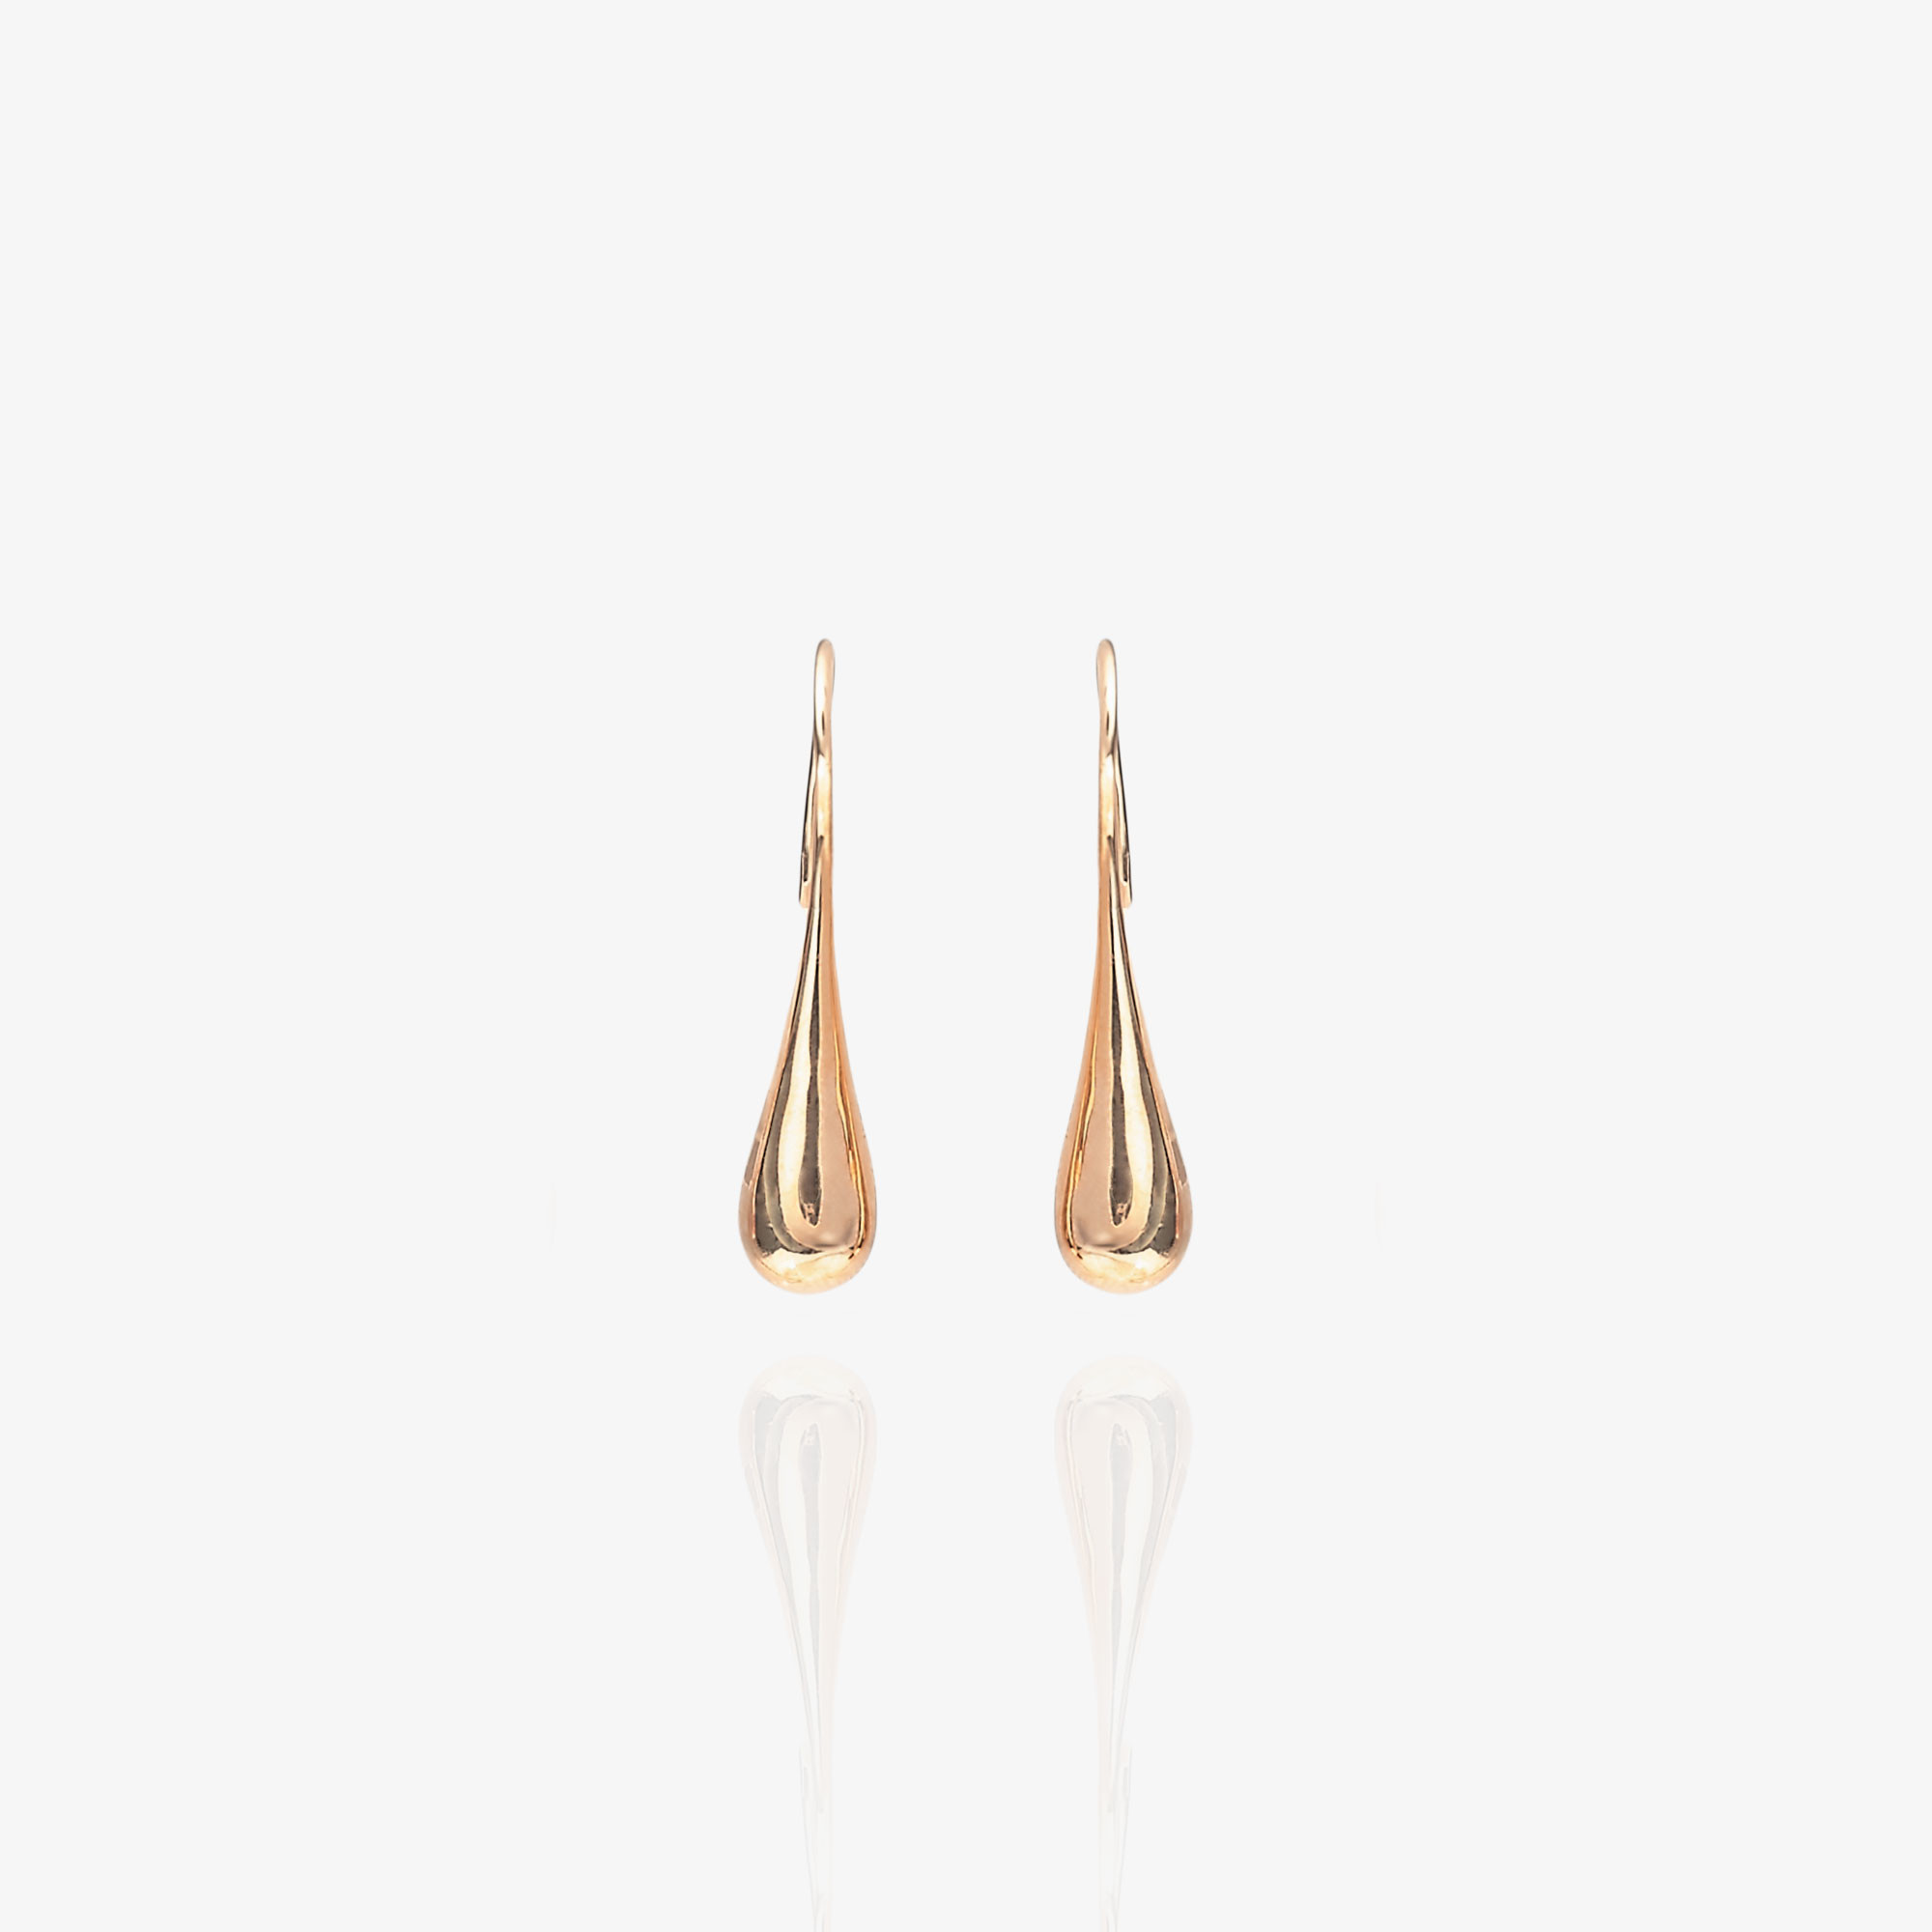 Drop earrings